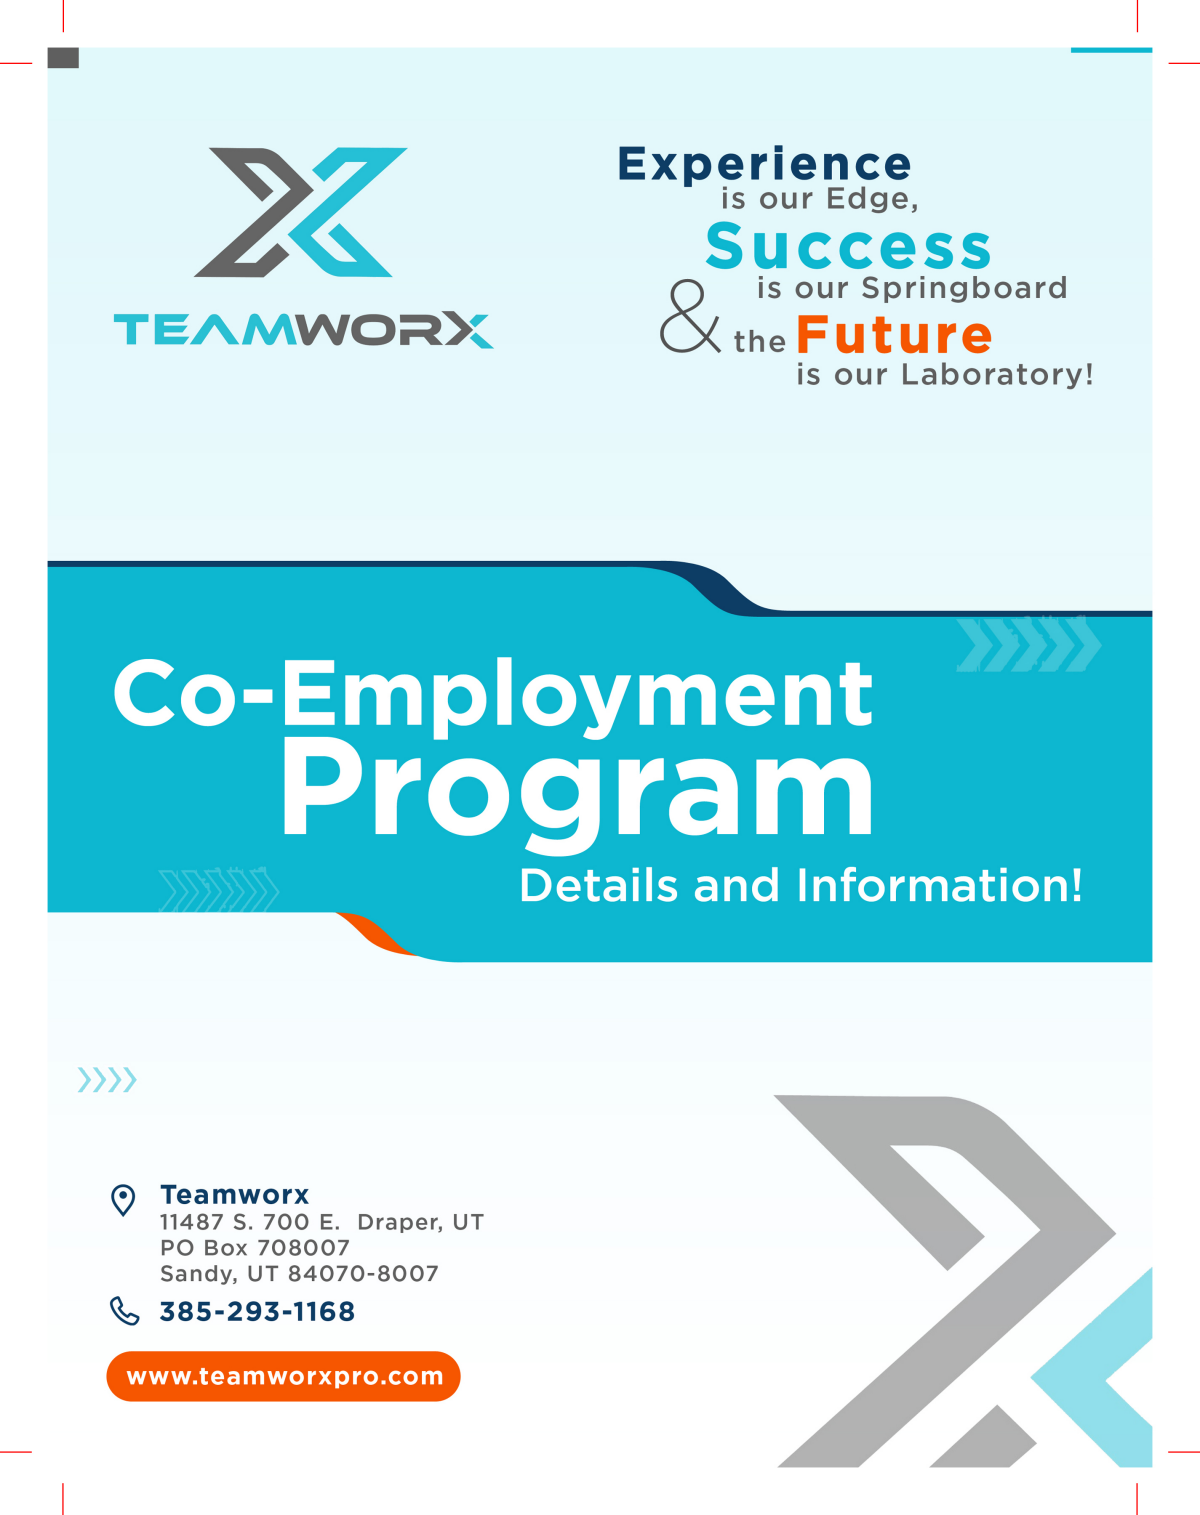 Changes for Teamworx Infographic